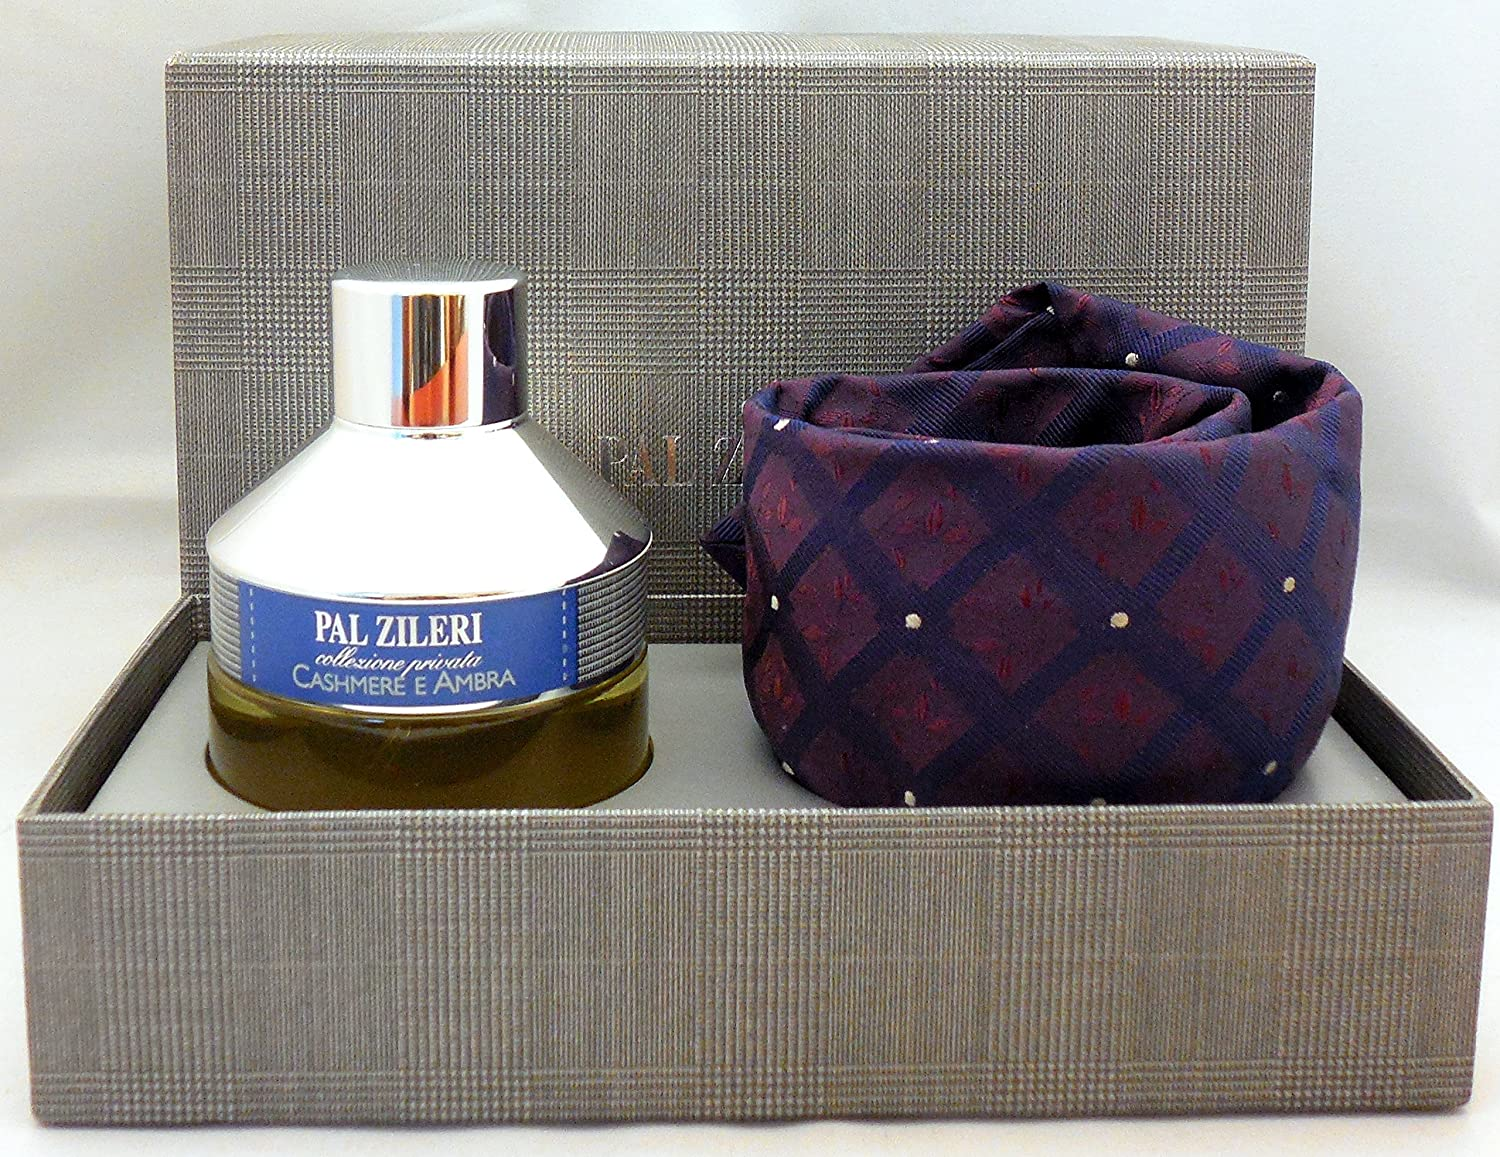 PAL ZILERI CASHMERE EDT 100ML + CORBATA: Amazon.es: Belleza